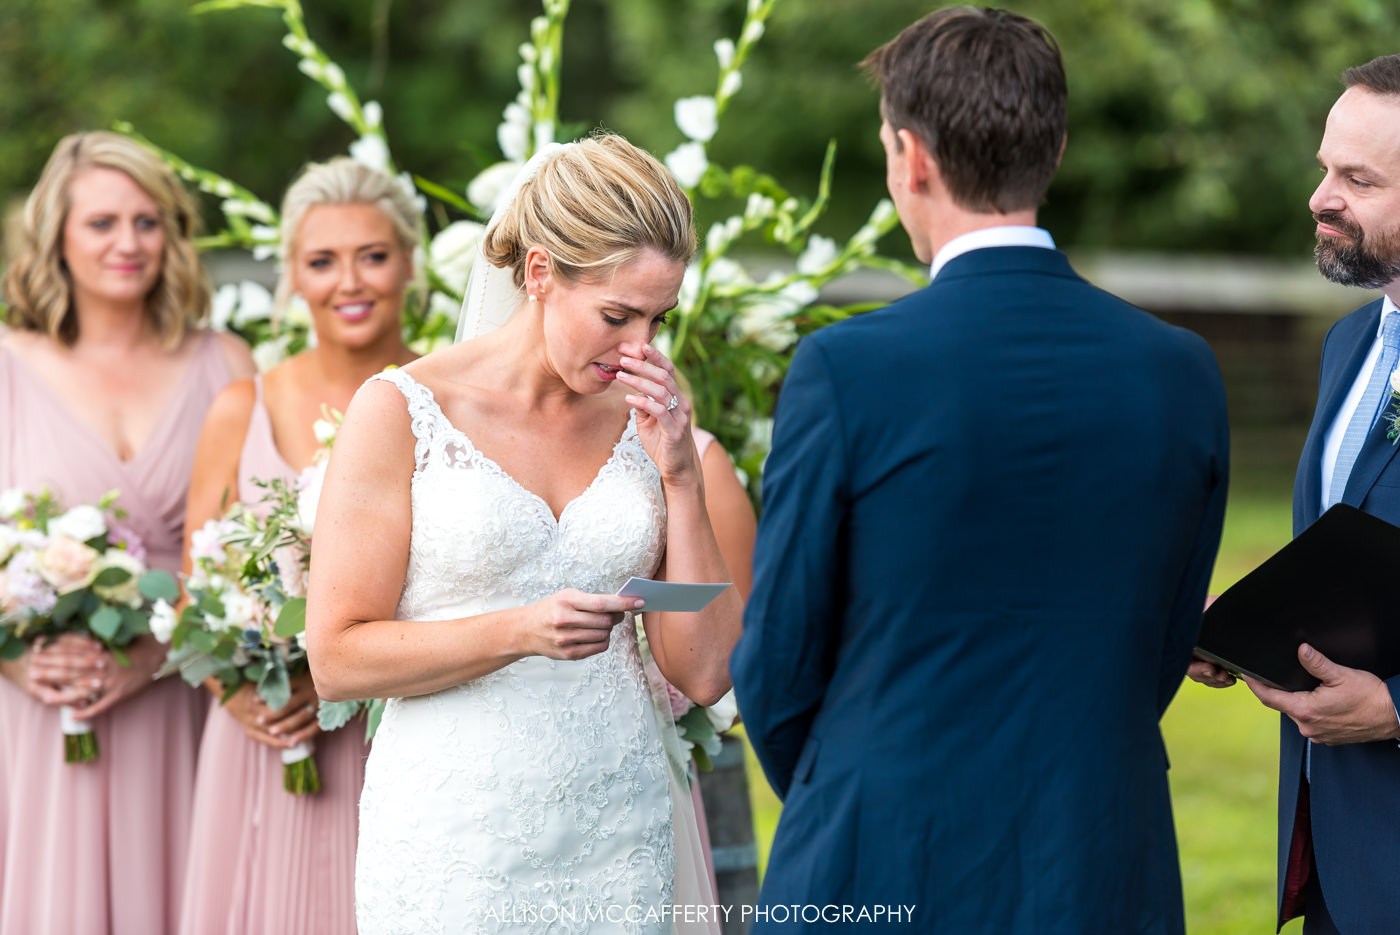 Outdoor wedding ceremony at Rose Bank Winery